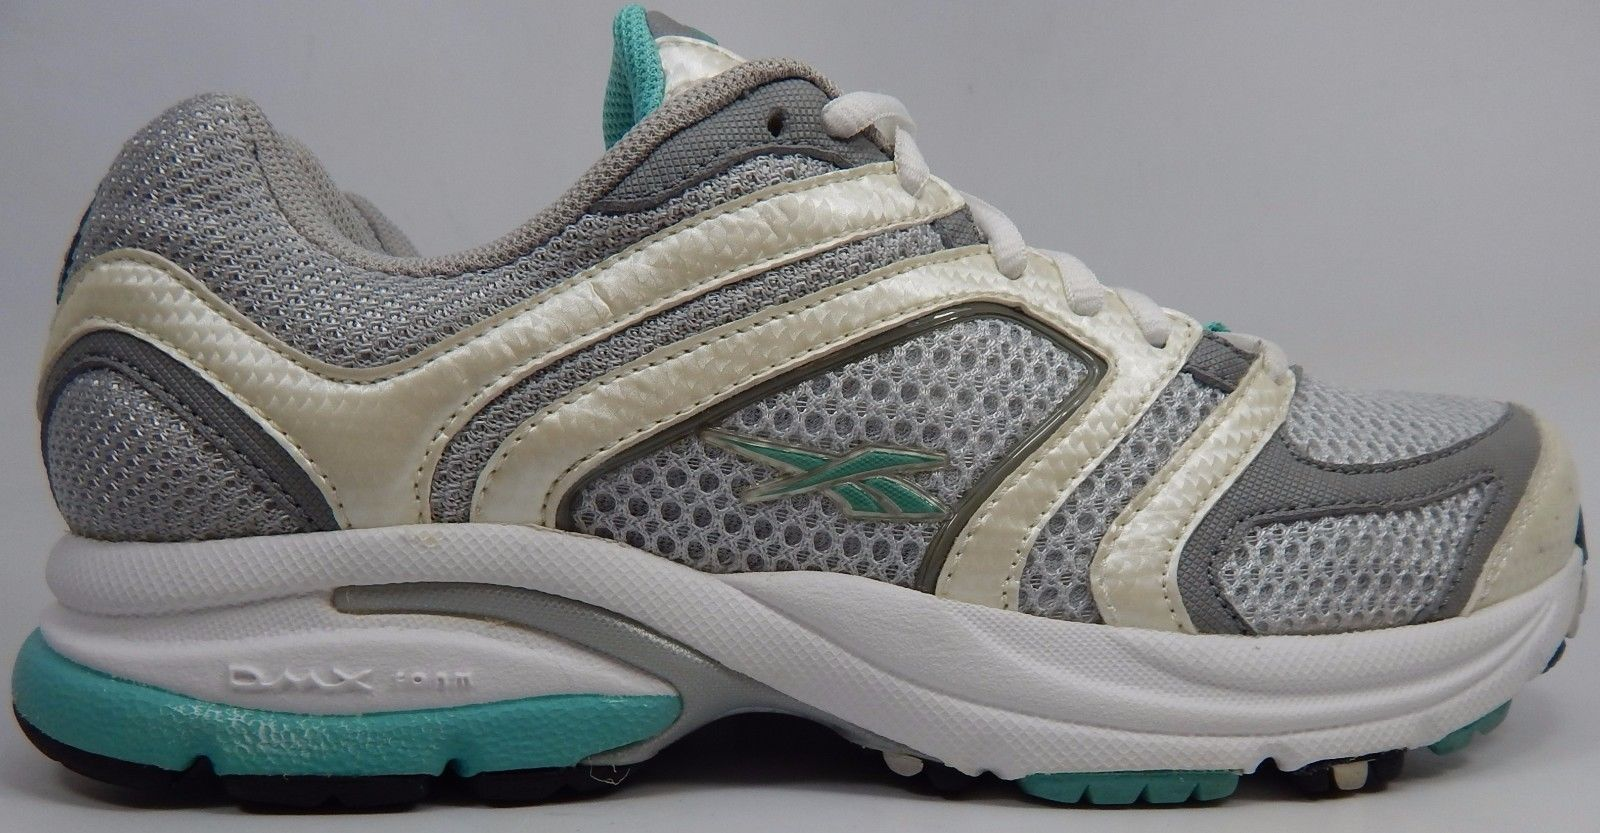 Reebok RB 804 FLU Women s Running Shoes Size and 50 similar items. 57 434babd75